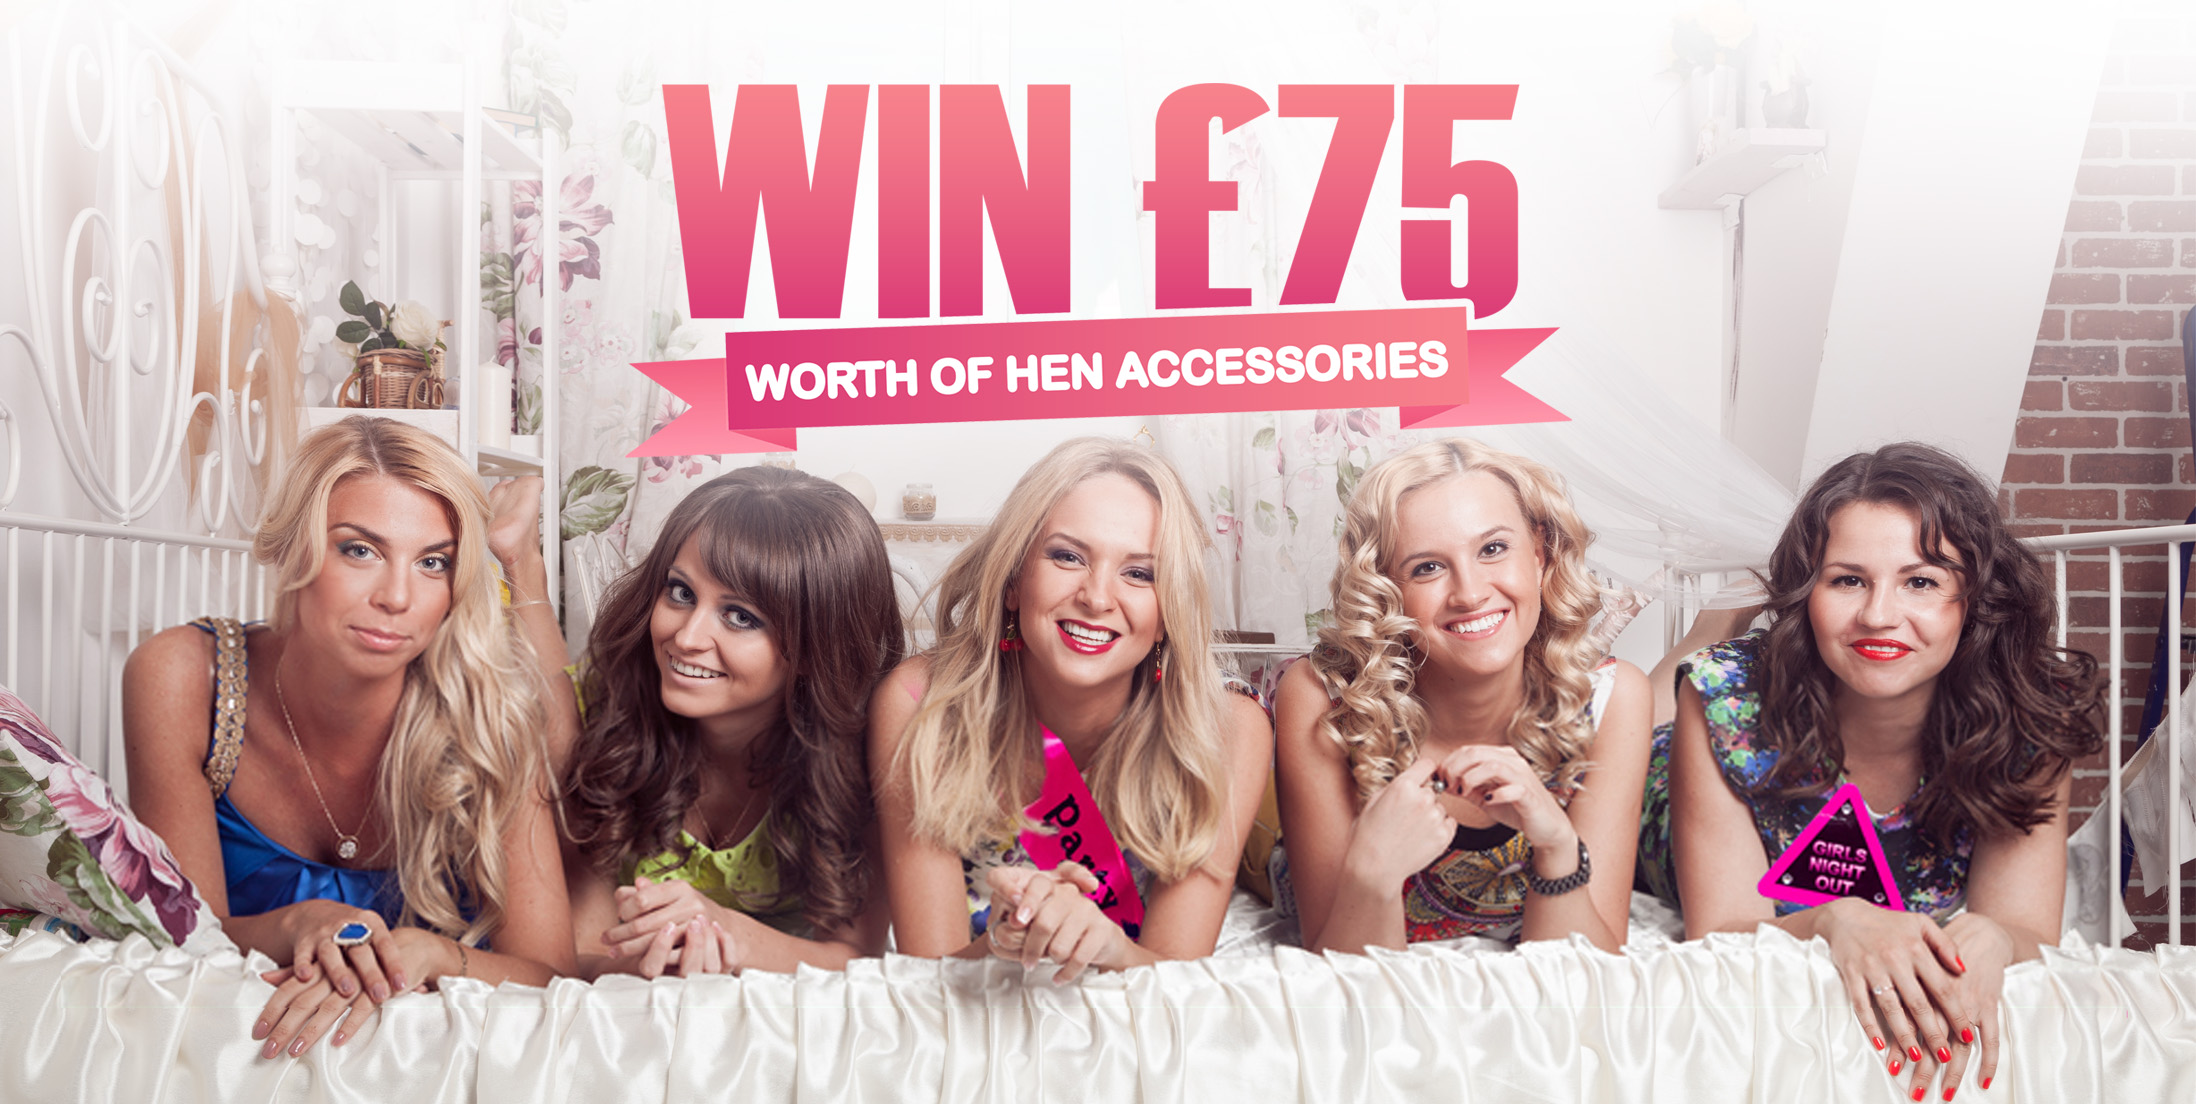 £75 Worth of Hen Party Accessories Competition